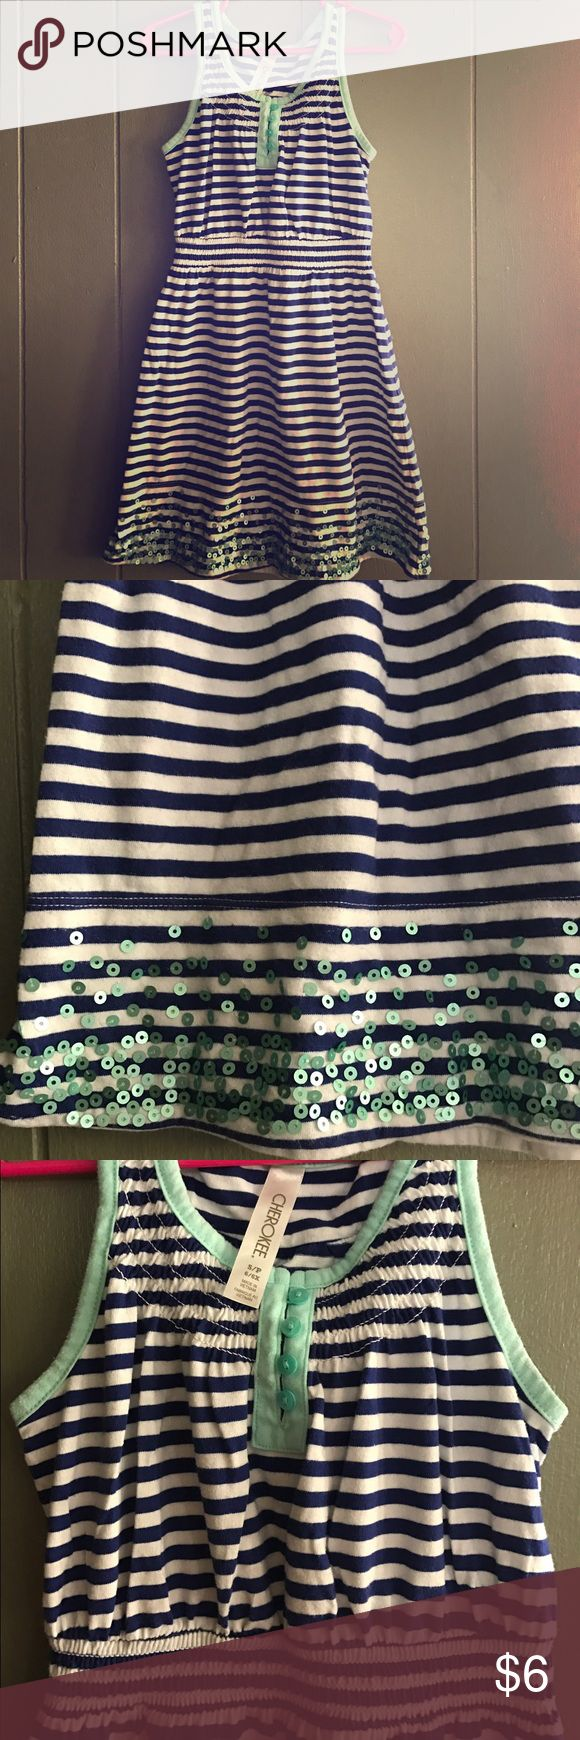 Girls pretty summer dress Very pretty girls summer dress. White and royal blue strips. Teal trim on arms and neck. Worn a handful of times. No rips, holes or stains. Cherokee Dresses Casual